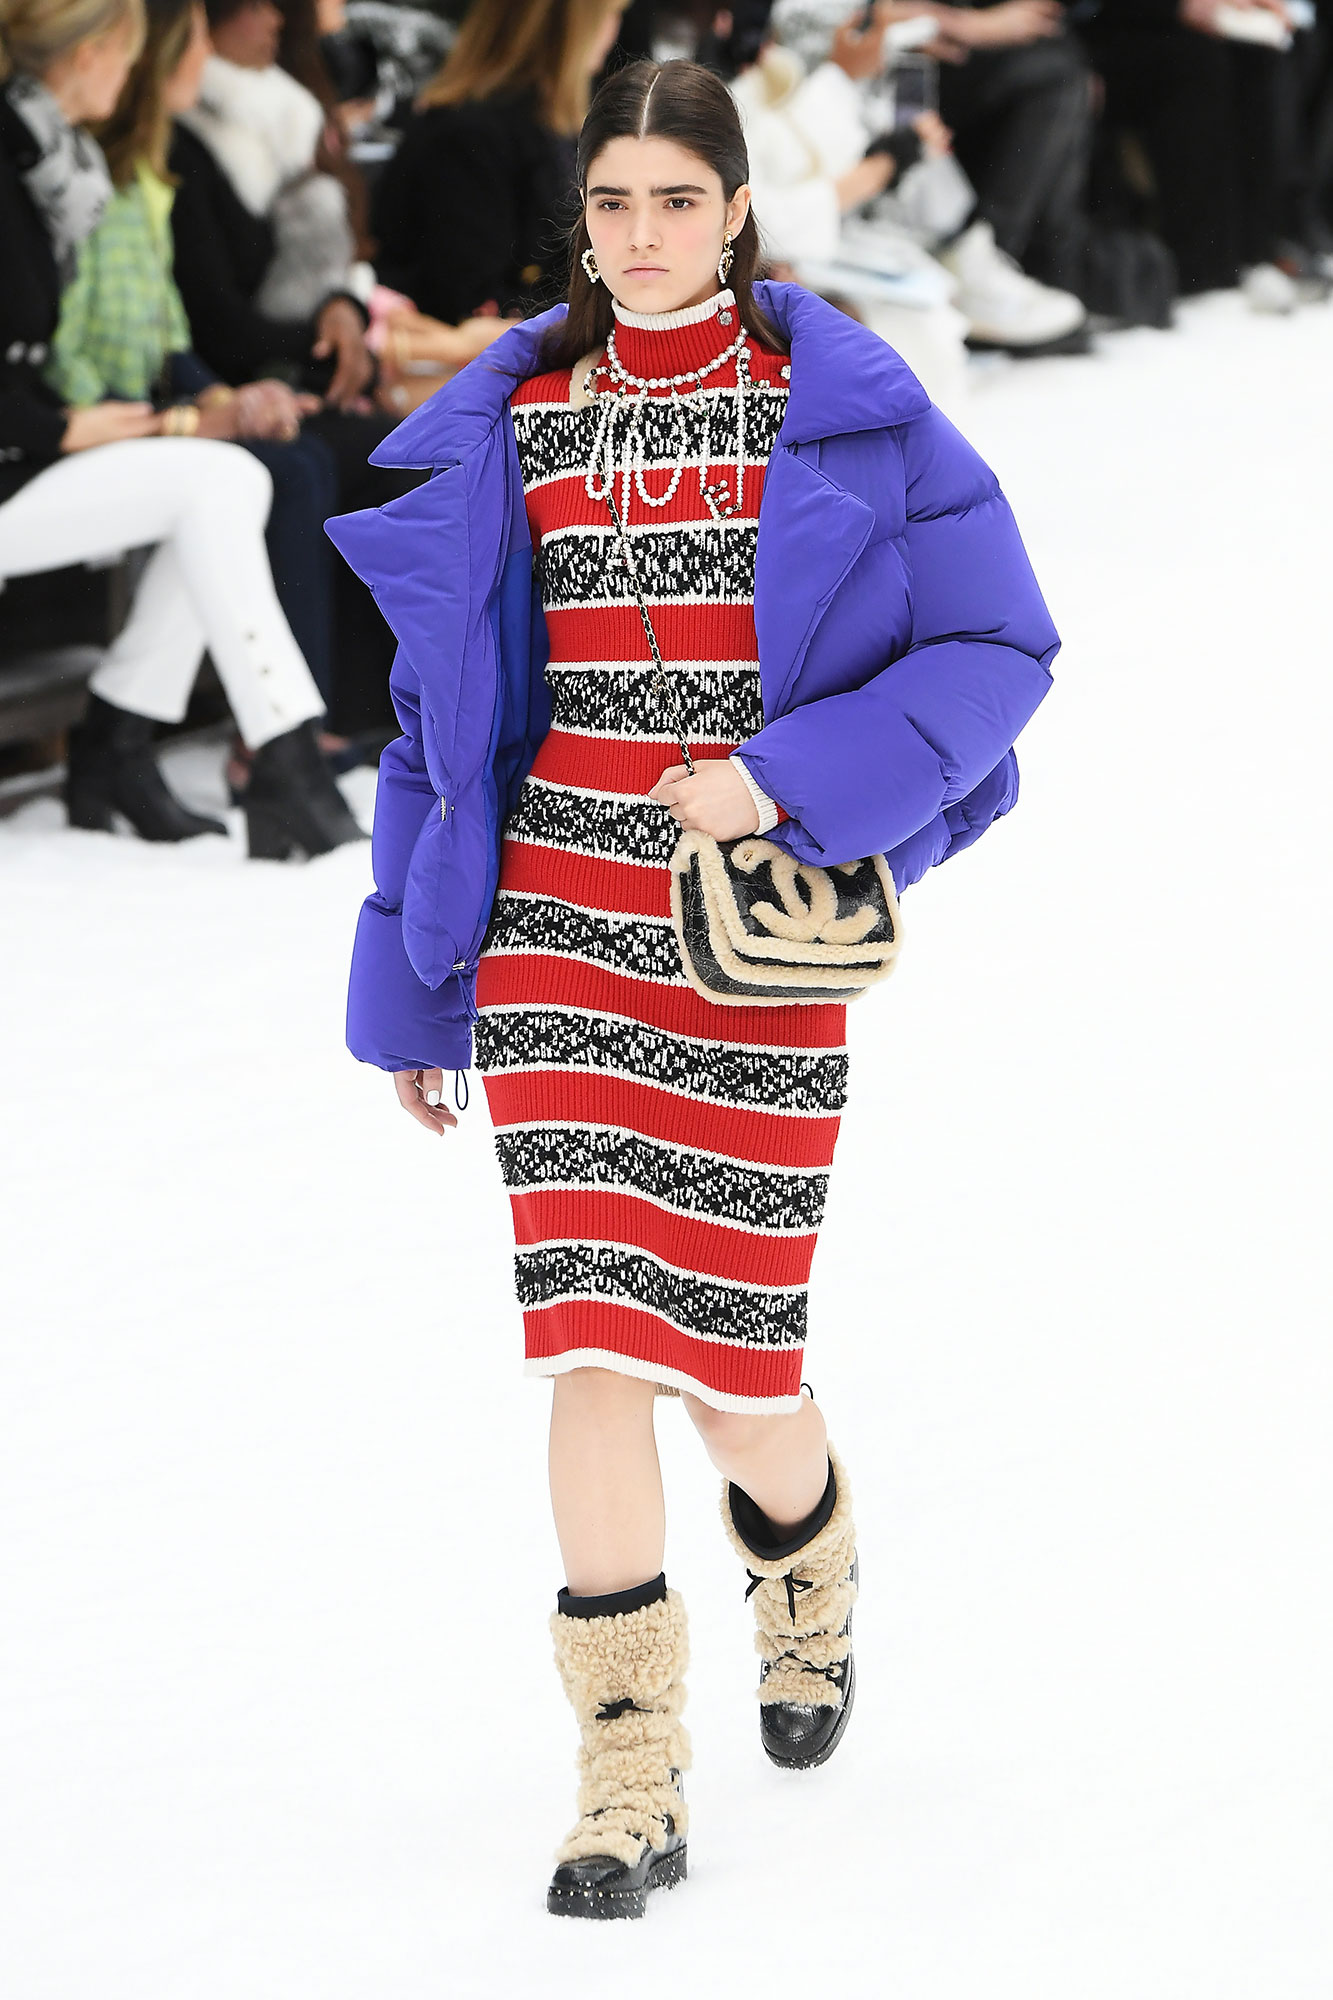 Karl Lagerfeld's Final Runway Was a Star-Studded Tribute to the Late Designer - Adding a splash of color to the affair, this stripped knee-length dress surprisingly works with the purple puffer jacket and furry snow boots.